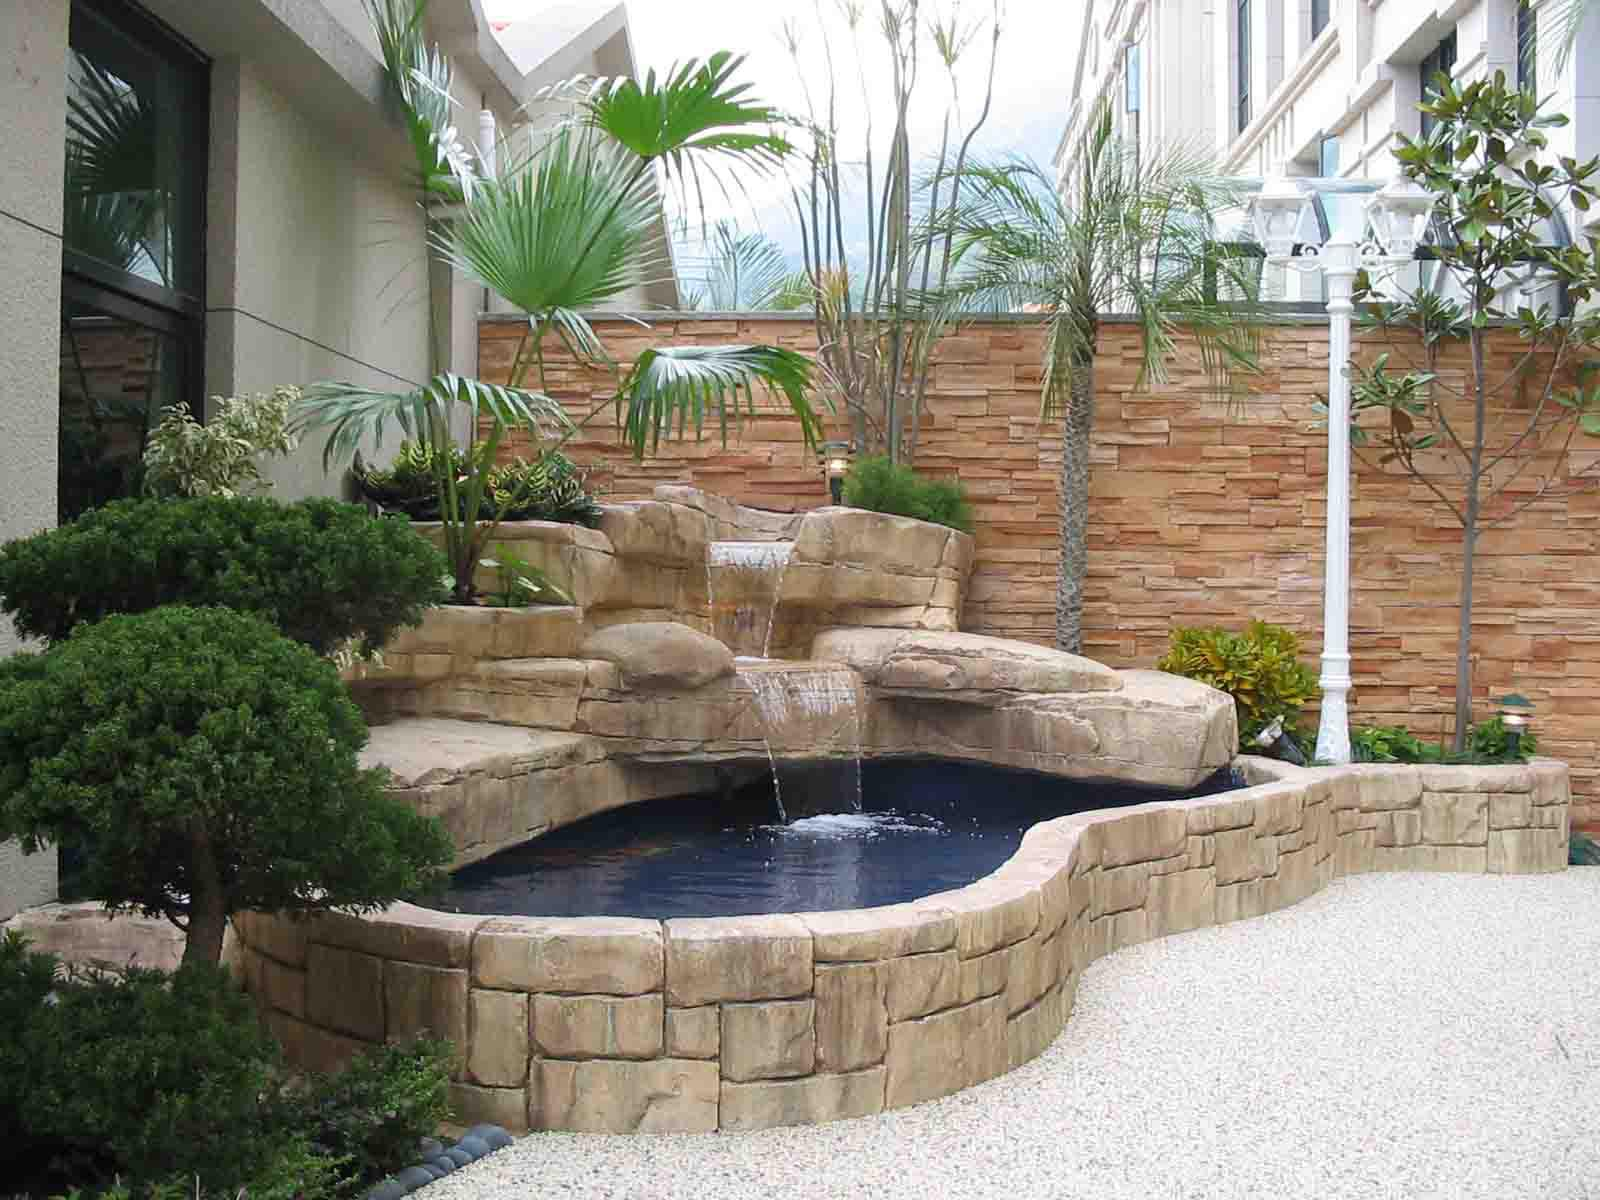 Fish pond garden design backyard design ideas for A garden design